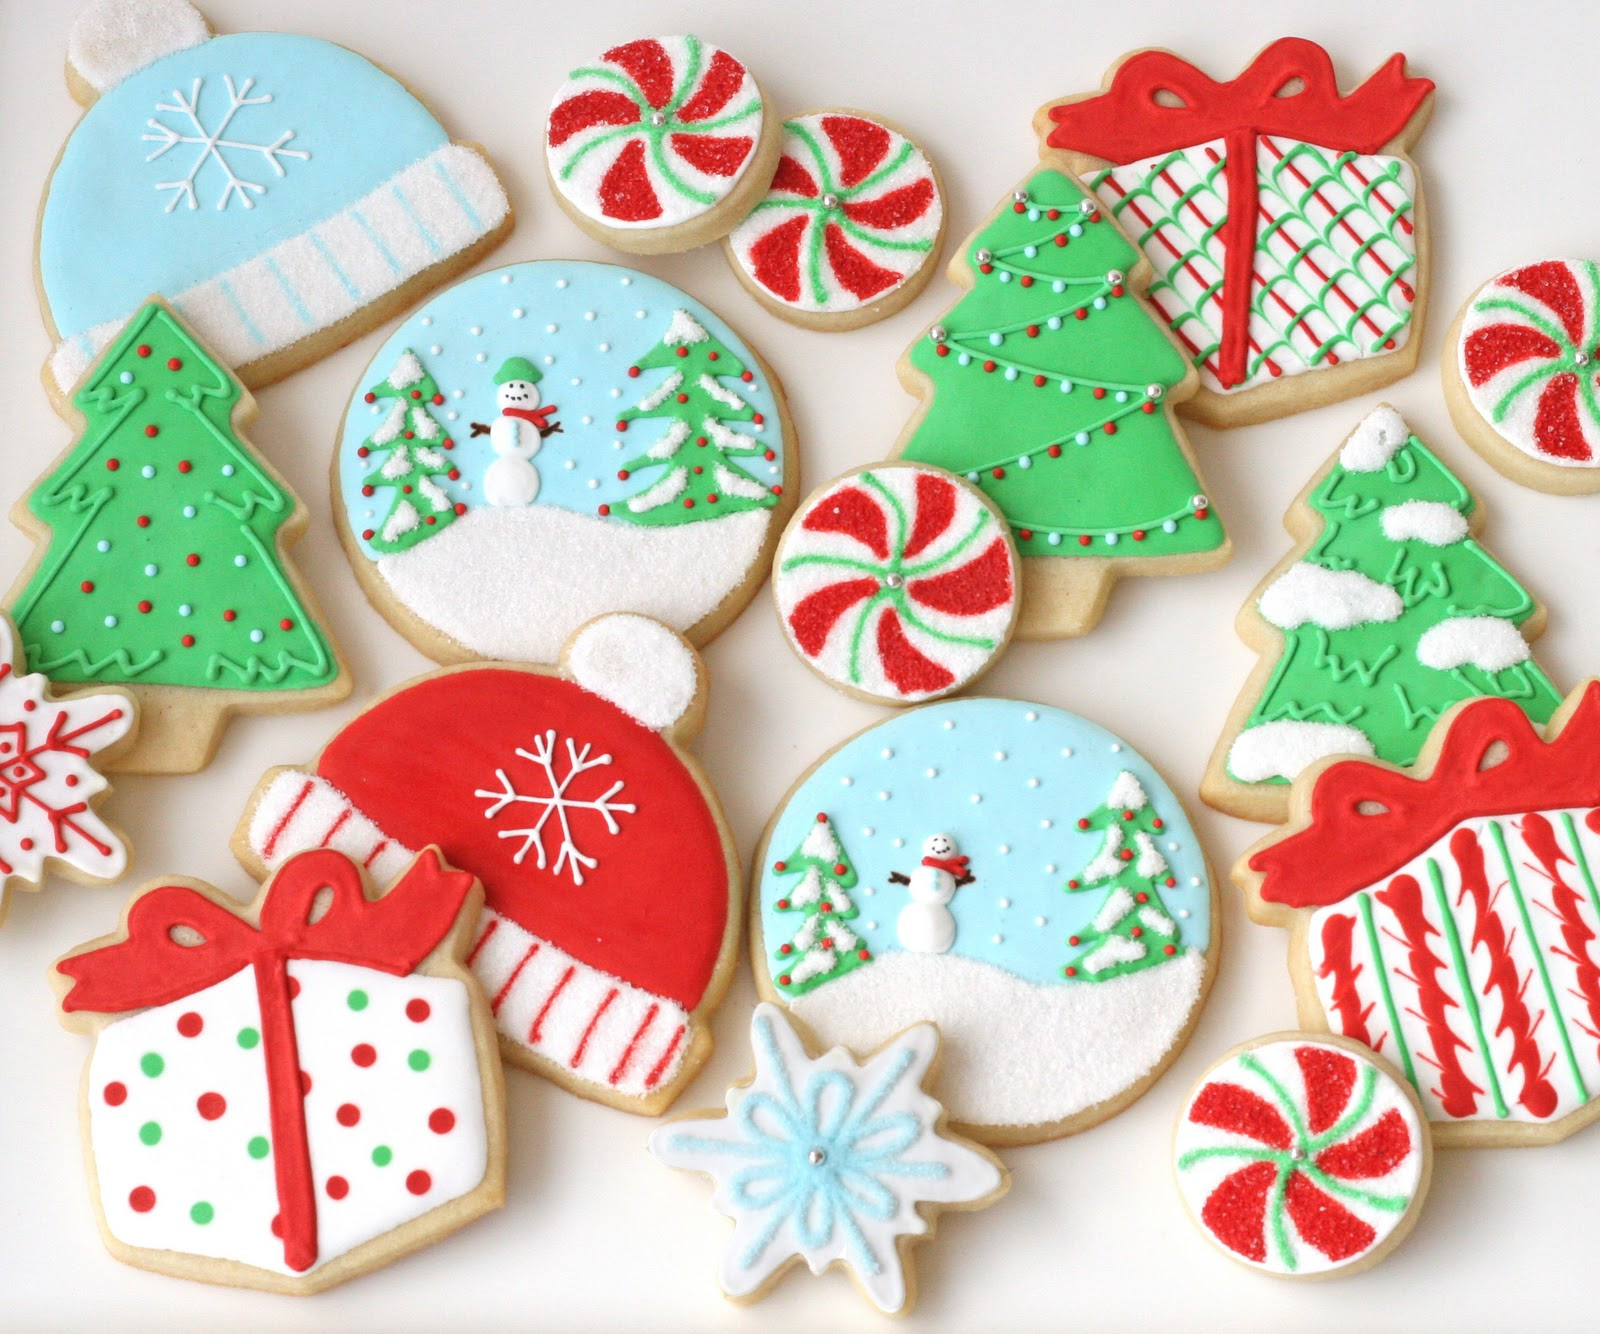 Christmas Sugar Cookies Recipes  Christmas Cookies Galore Glorious Treats